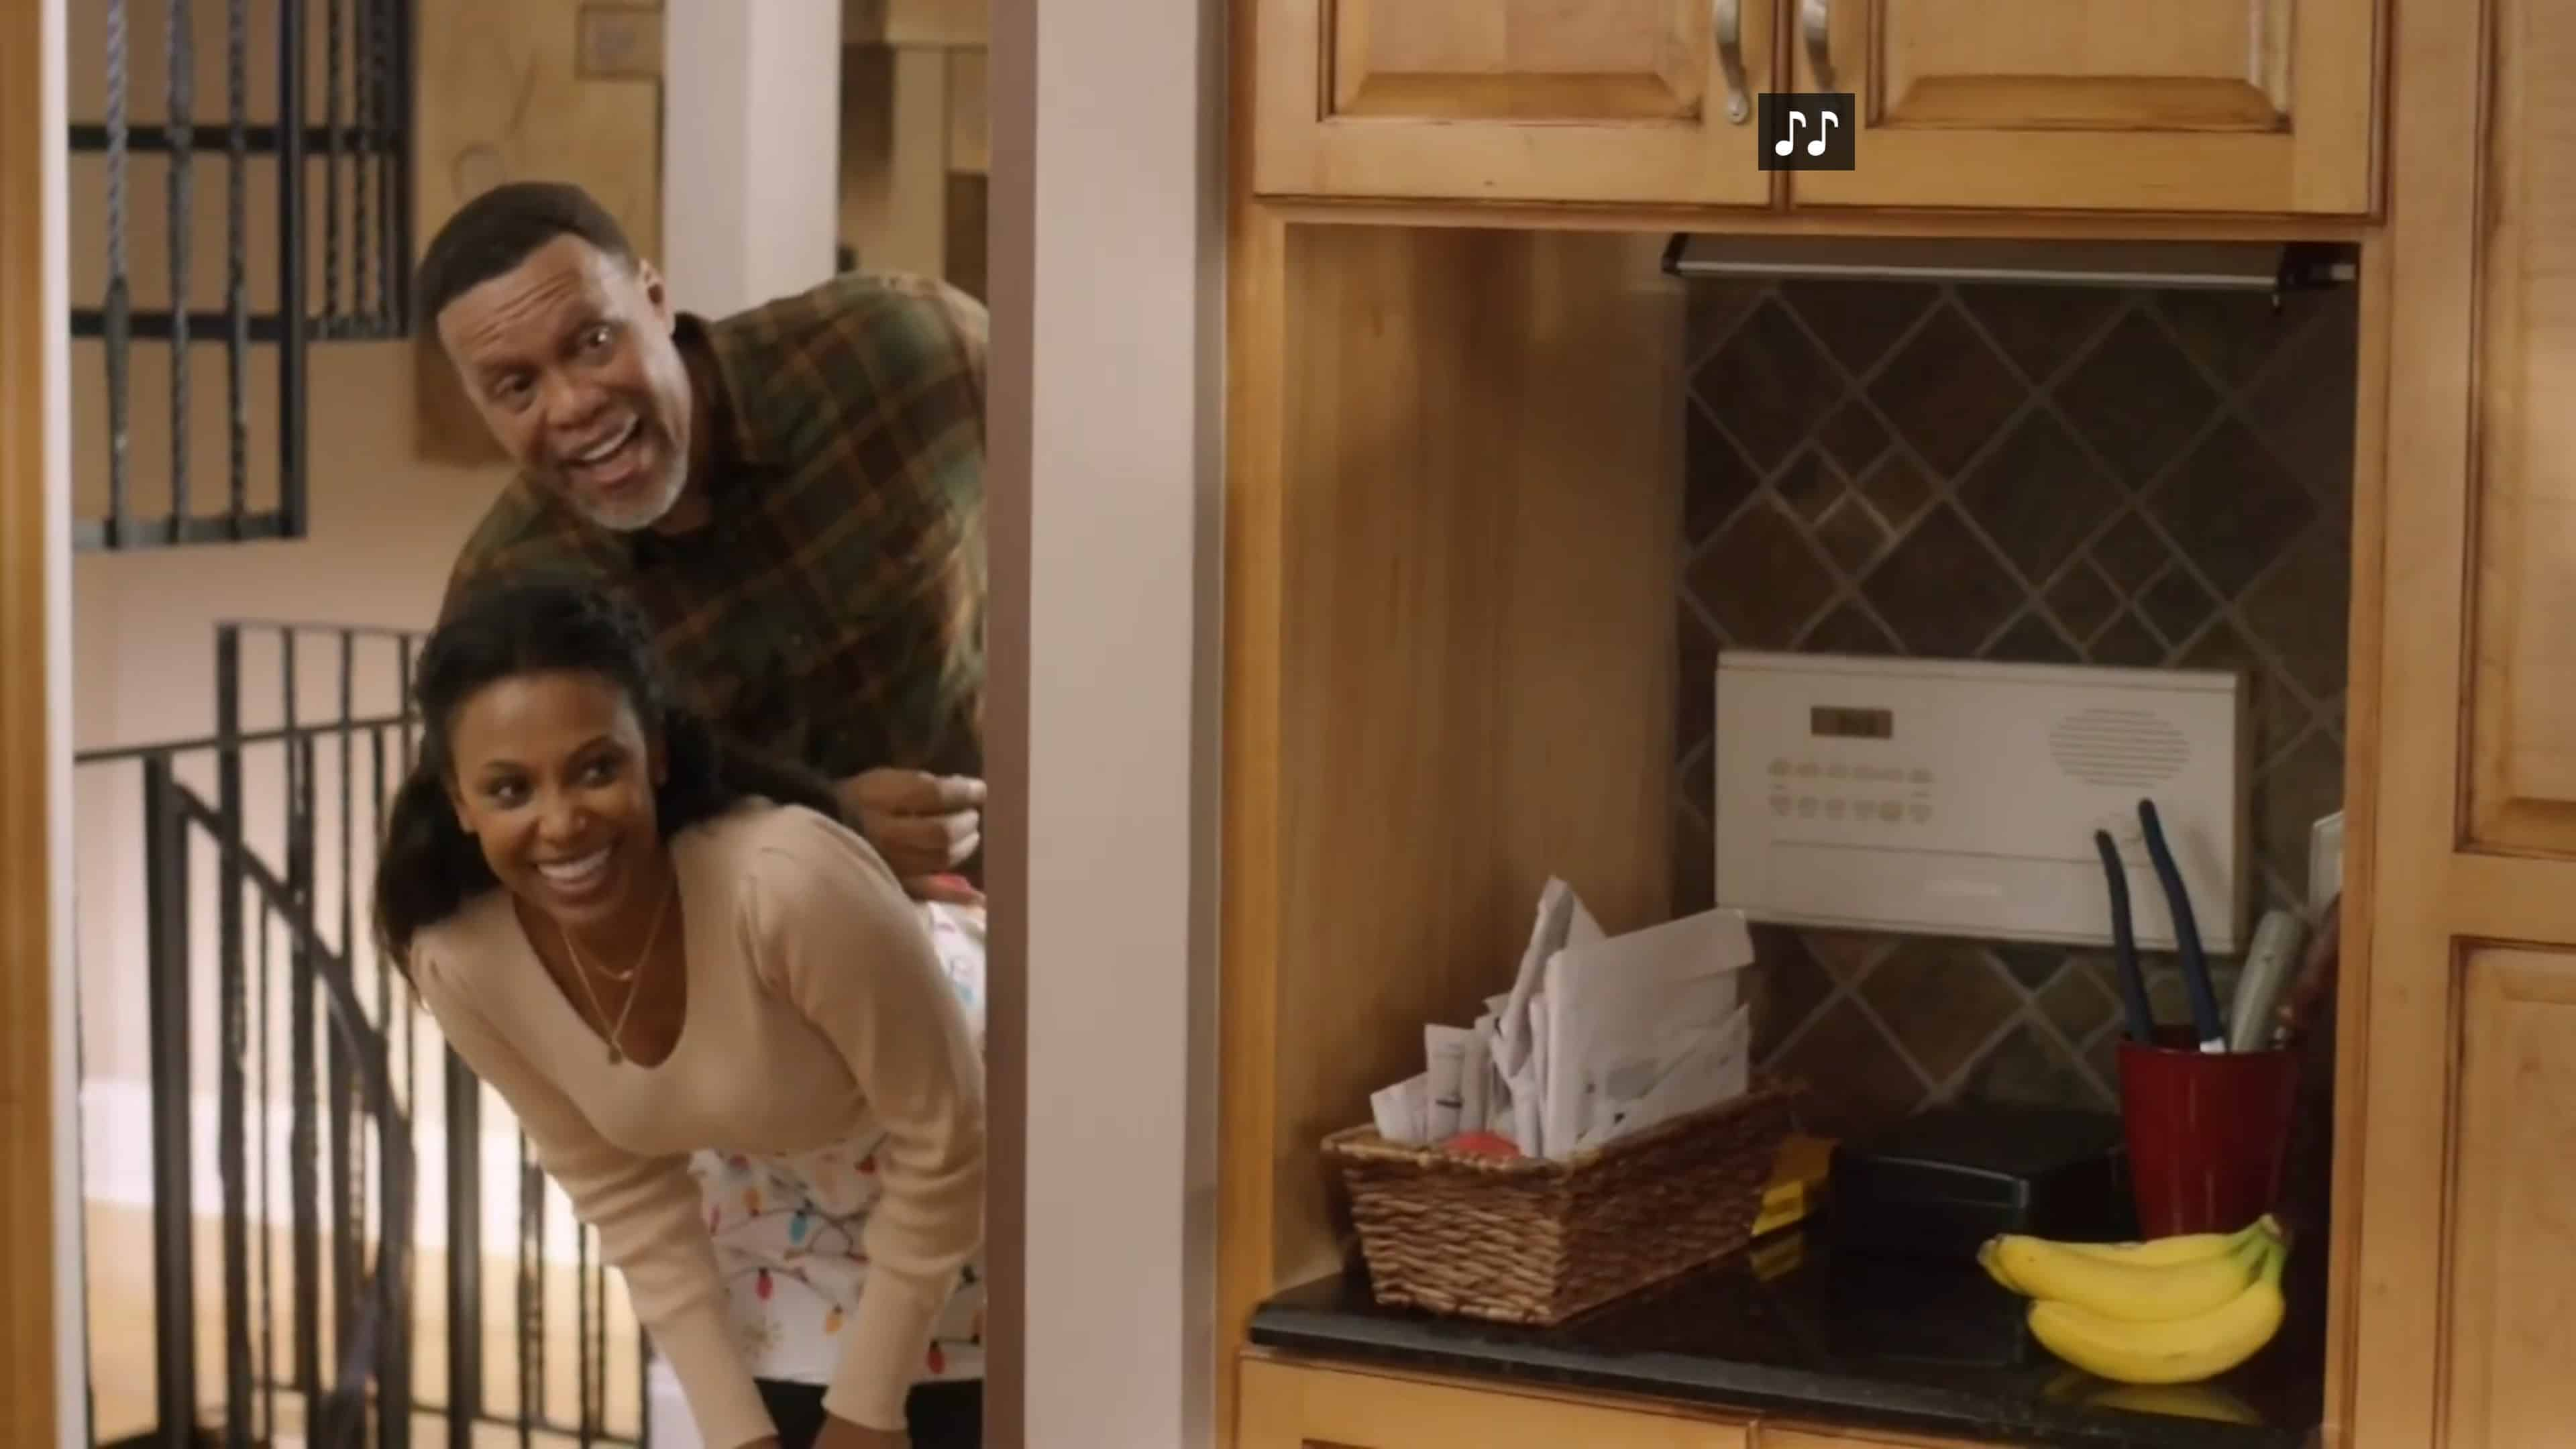 Buck (L. Warren Young) and Chloe laughing at Donovan.